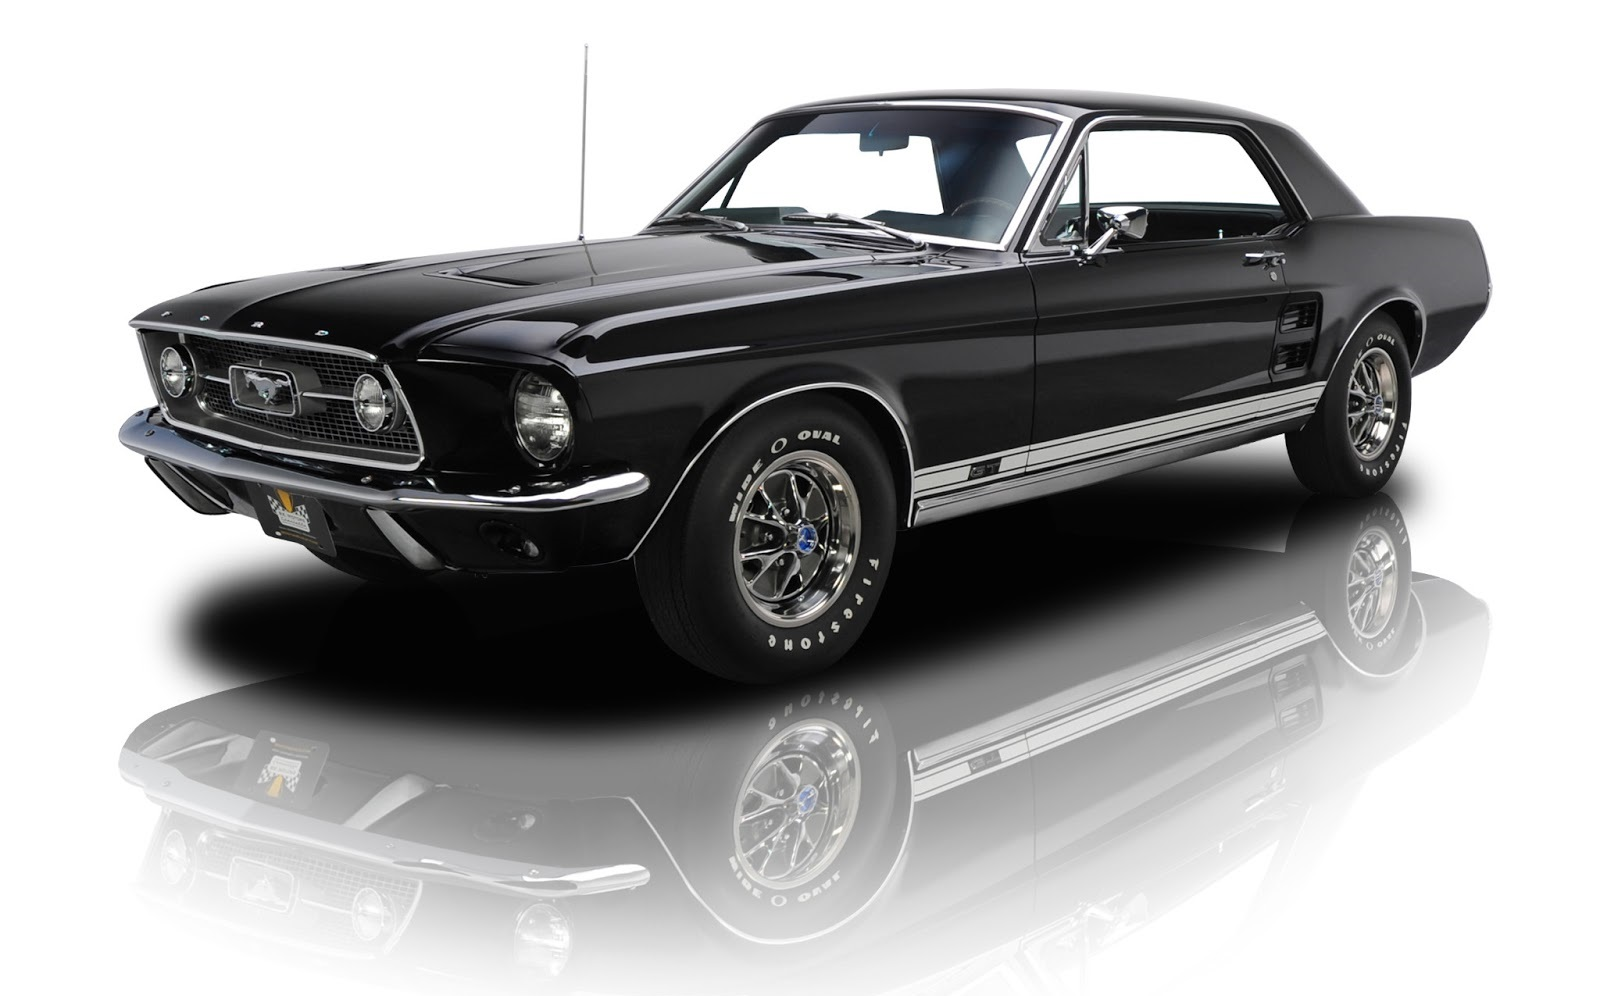 Finally customers from europe can also enjoy one of the most iconic american cars ford mustang is nowavailable in ford showrooms in poland